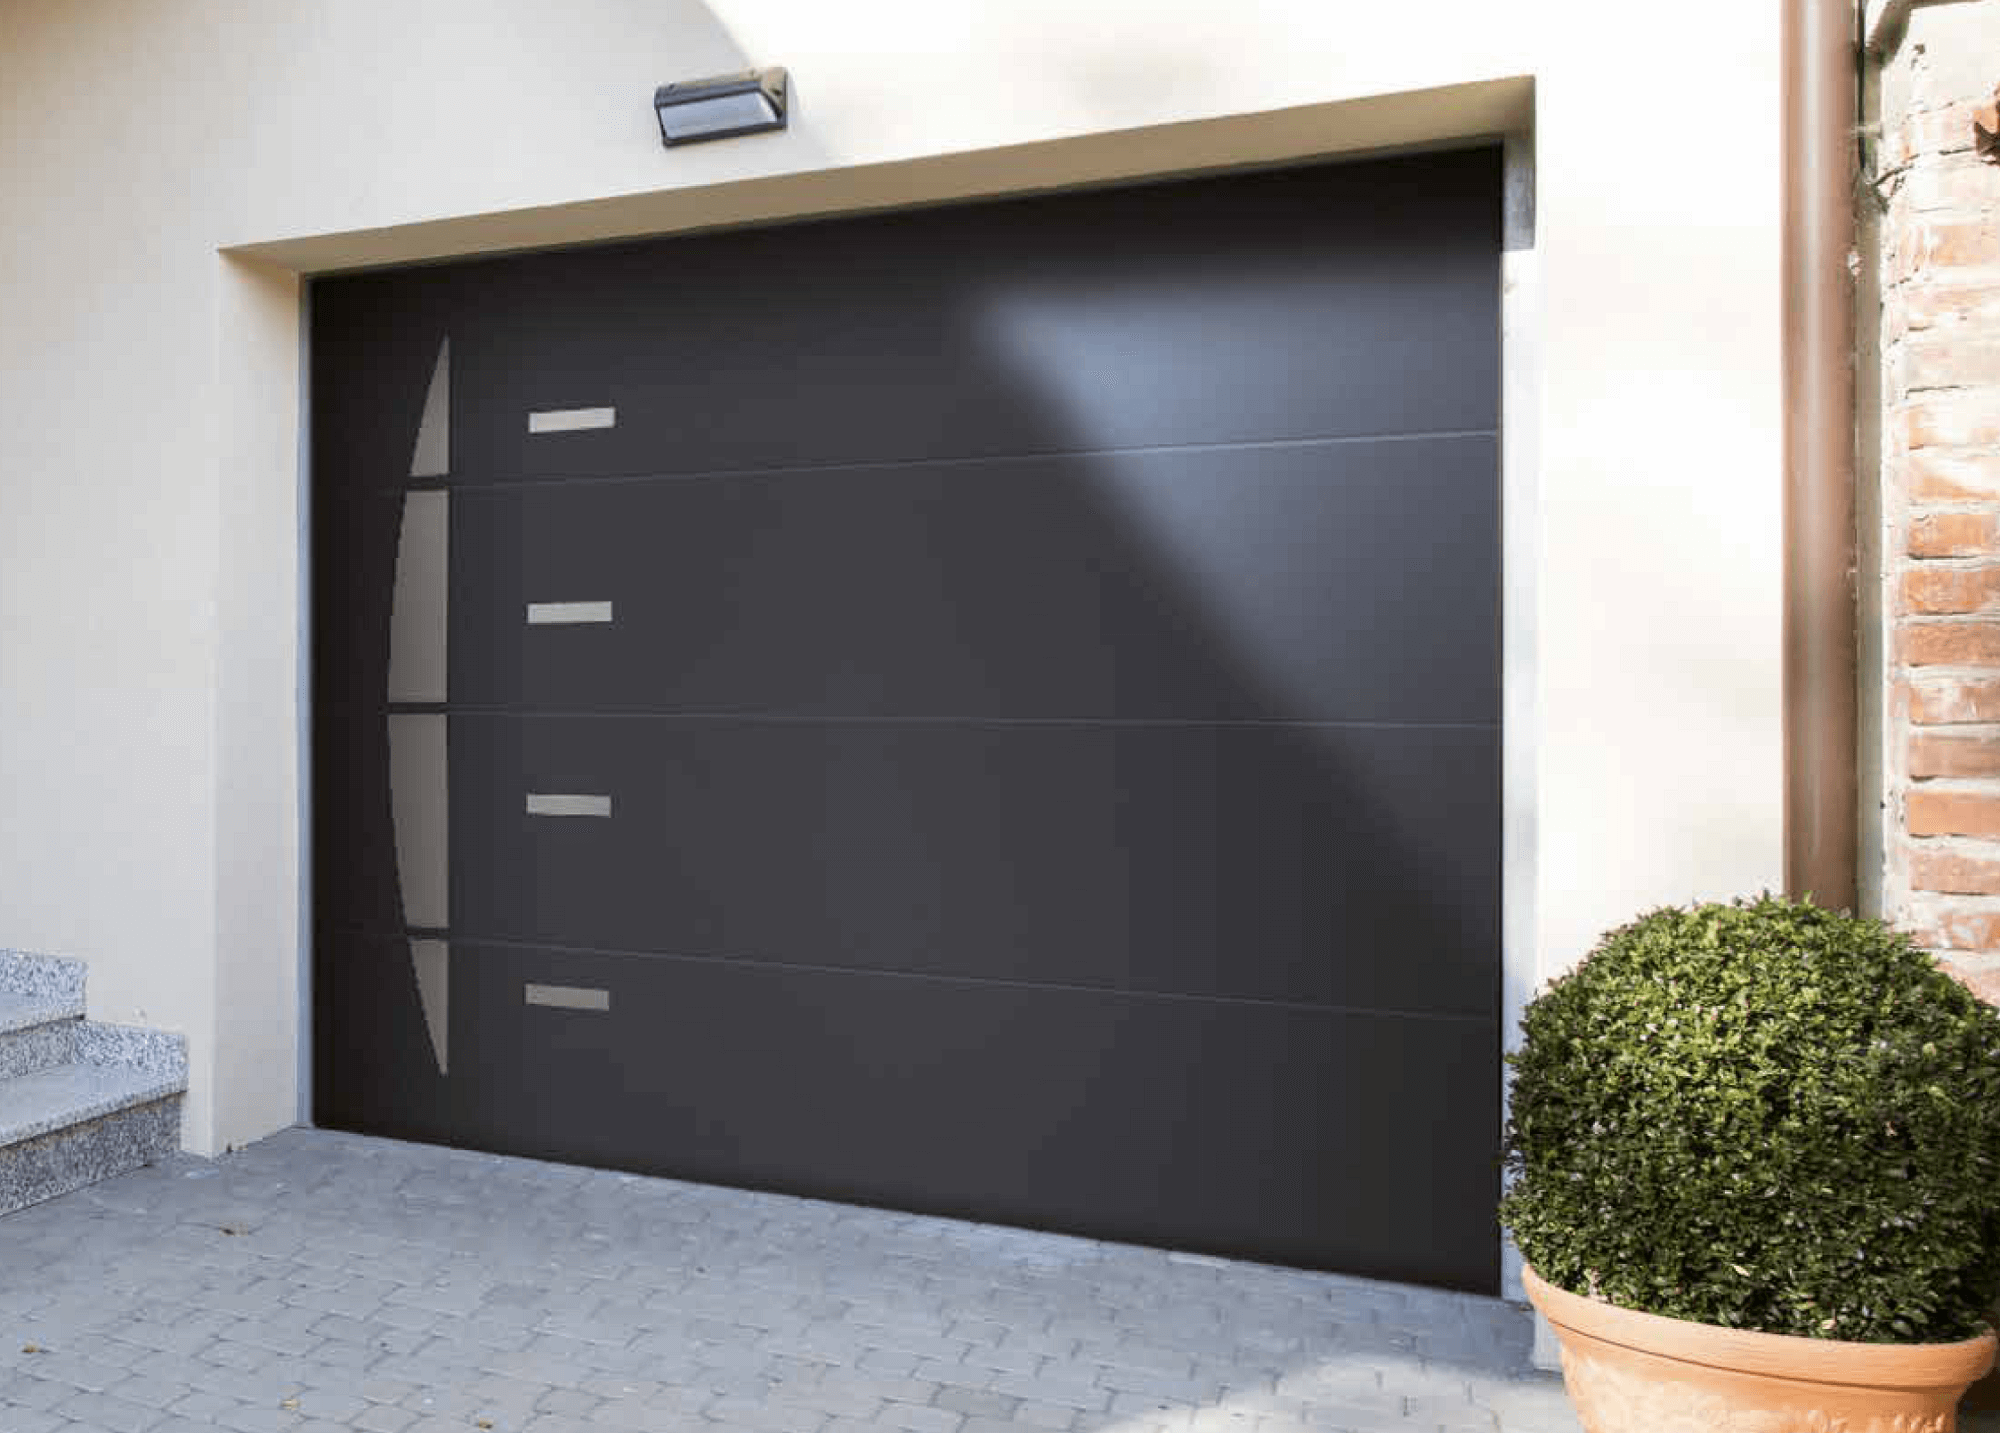 Porte de garage motoris e portes de garage sur mesure - Porte de garage sectionnelle ou enroulable ...